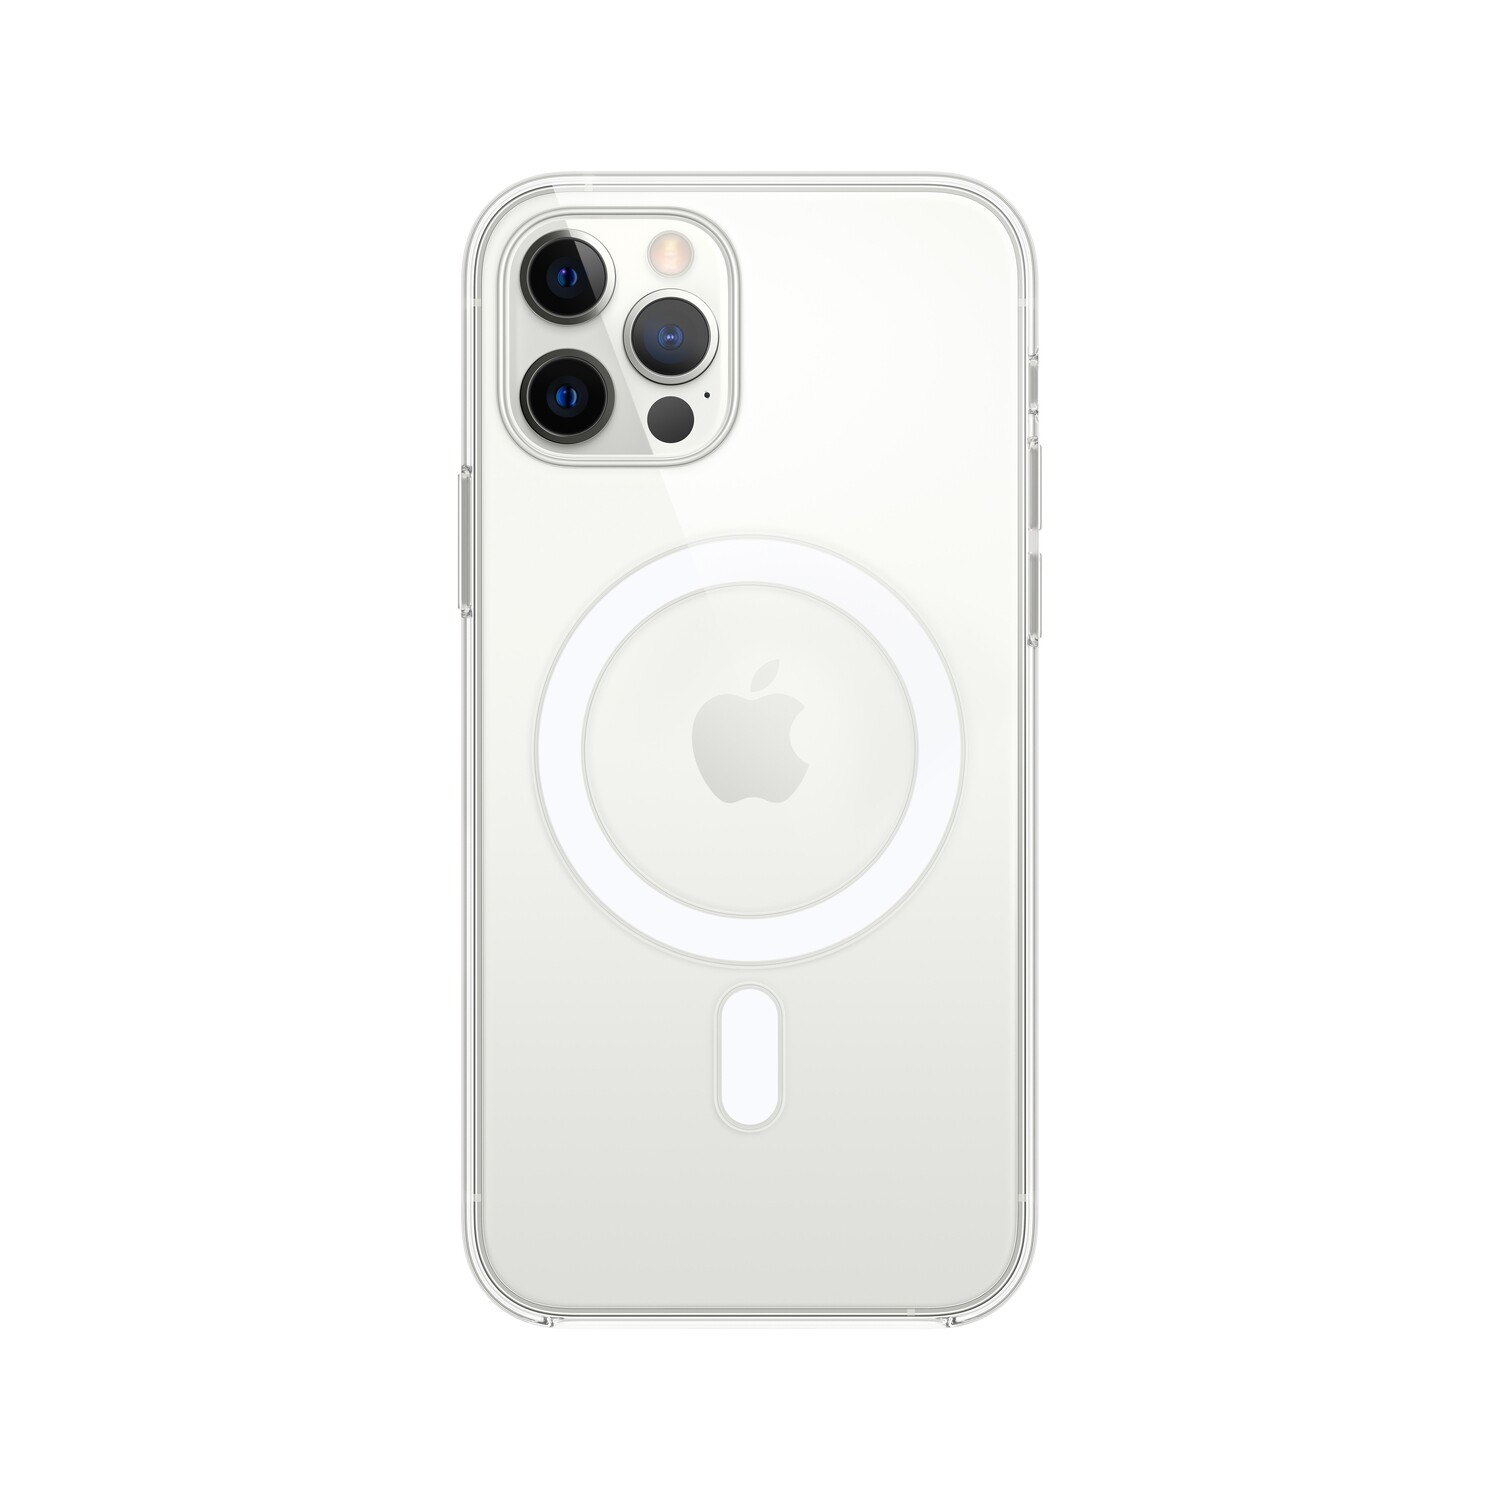 Apple iPhone 12 / 12 Pro Clear Case with MagSafe